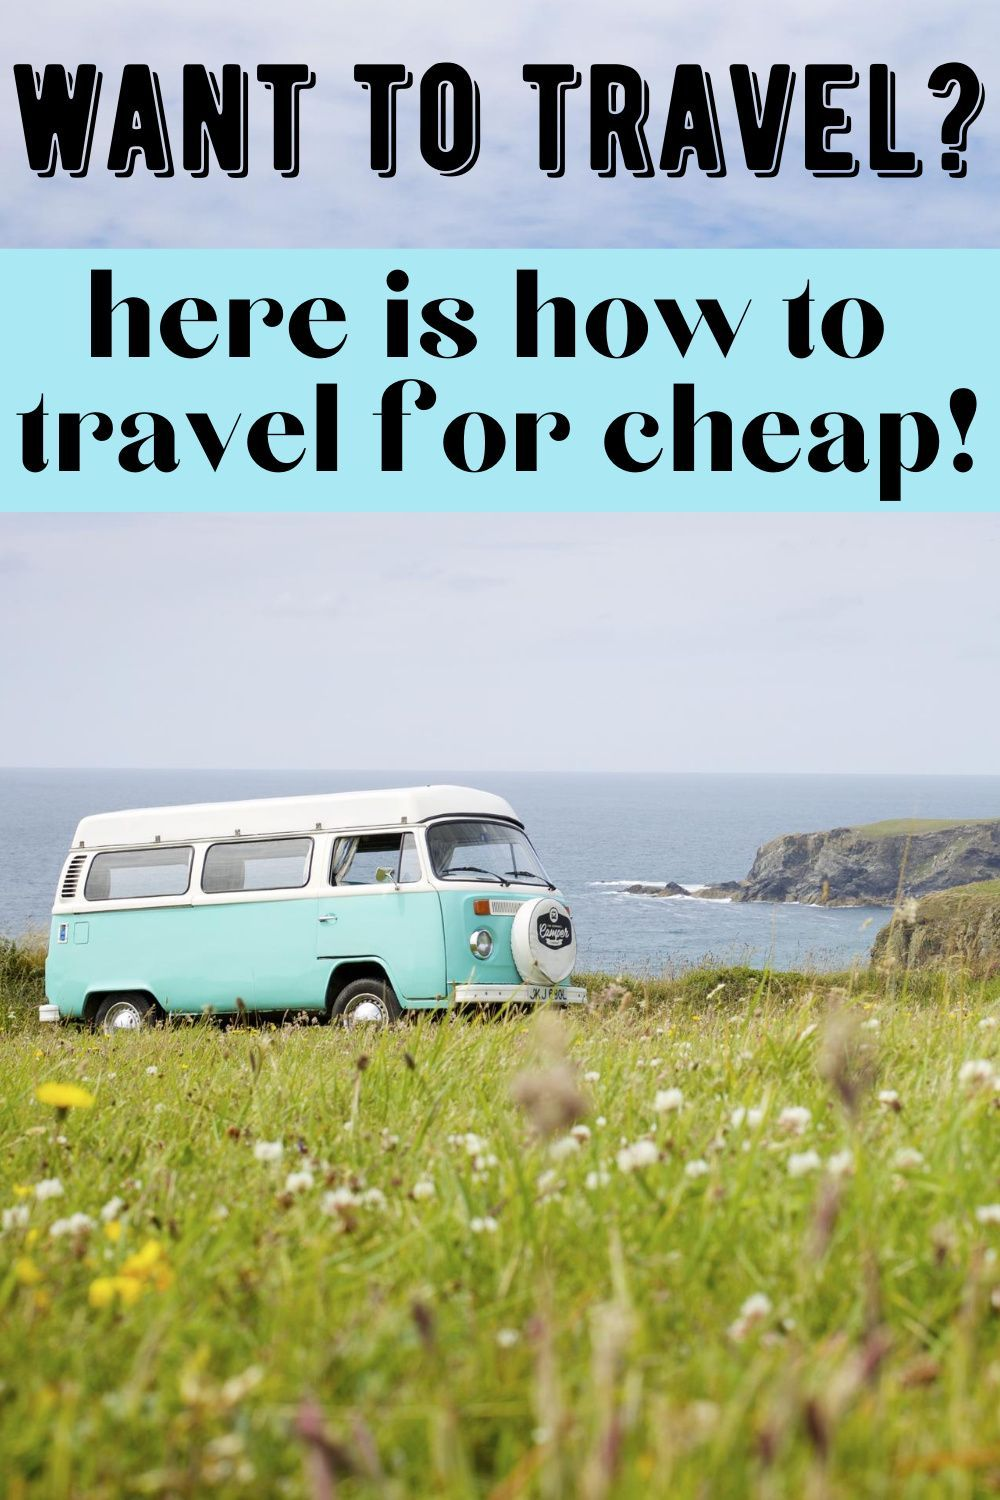 Want to travel more? Don't think you have the money to do so? Think again! Here are 15 ways to travel for cheap! #travel #budget #travelonabudget #budgettravel #cheaptravel #vacation #traveldeals #howtofindcheaptravel #traveldiscounts #bucketlist #bucketlisttrip